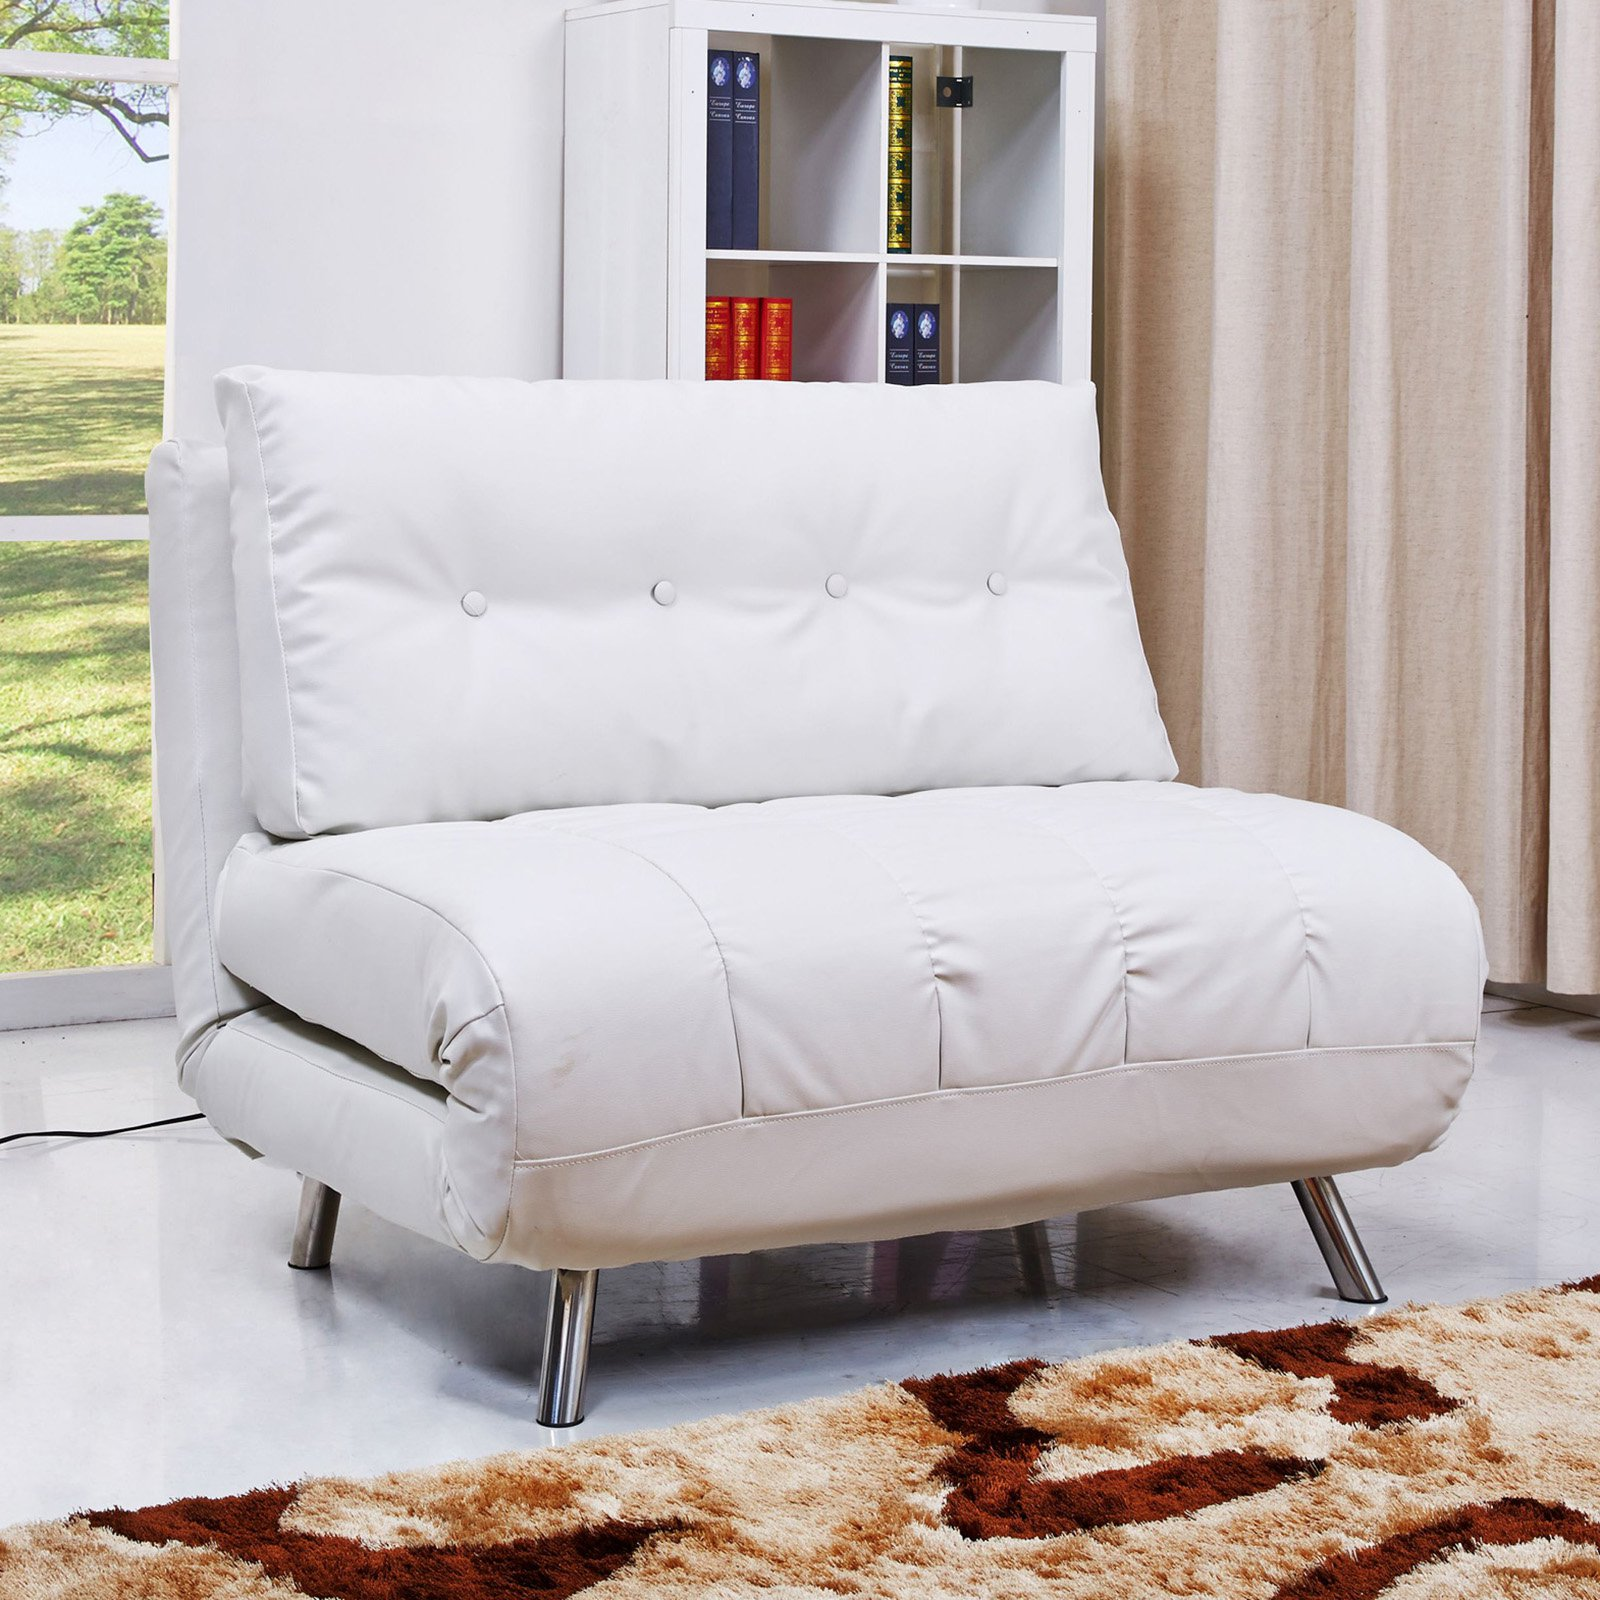 Gold Sparrow Tampa Convertible Big Chair Bed